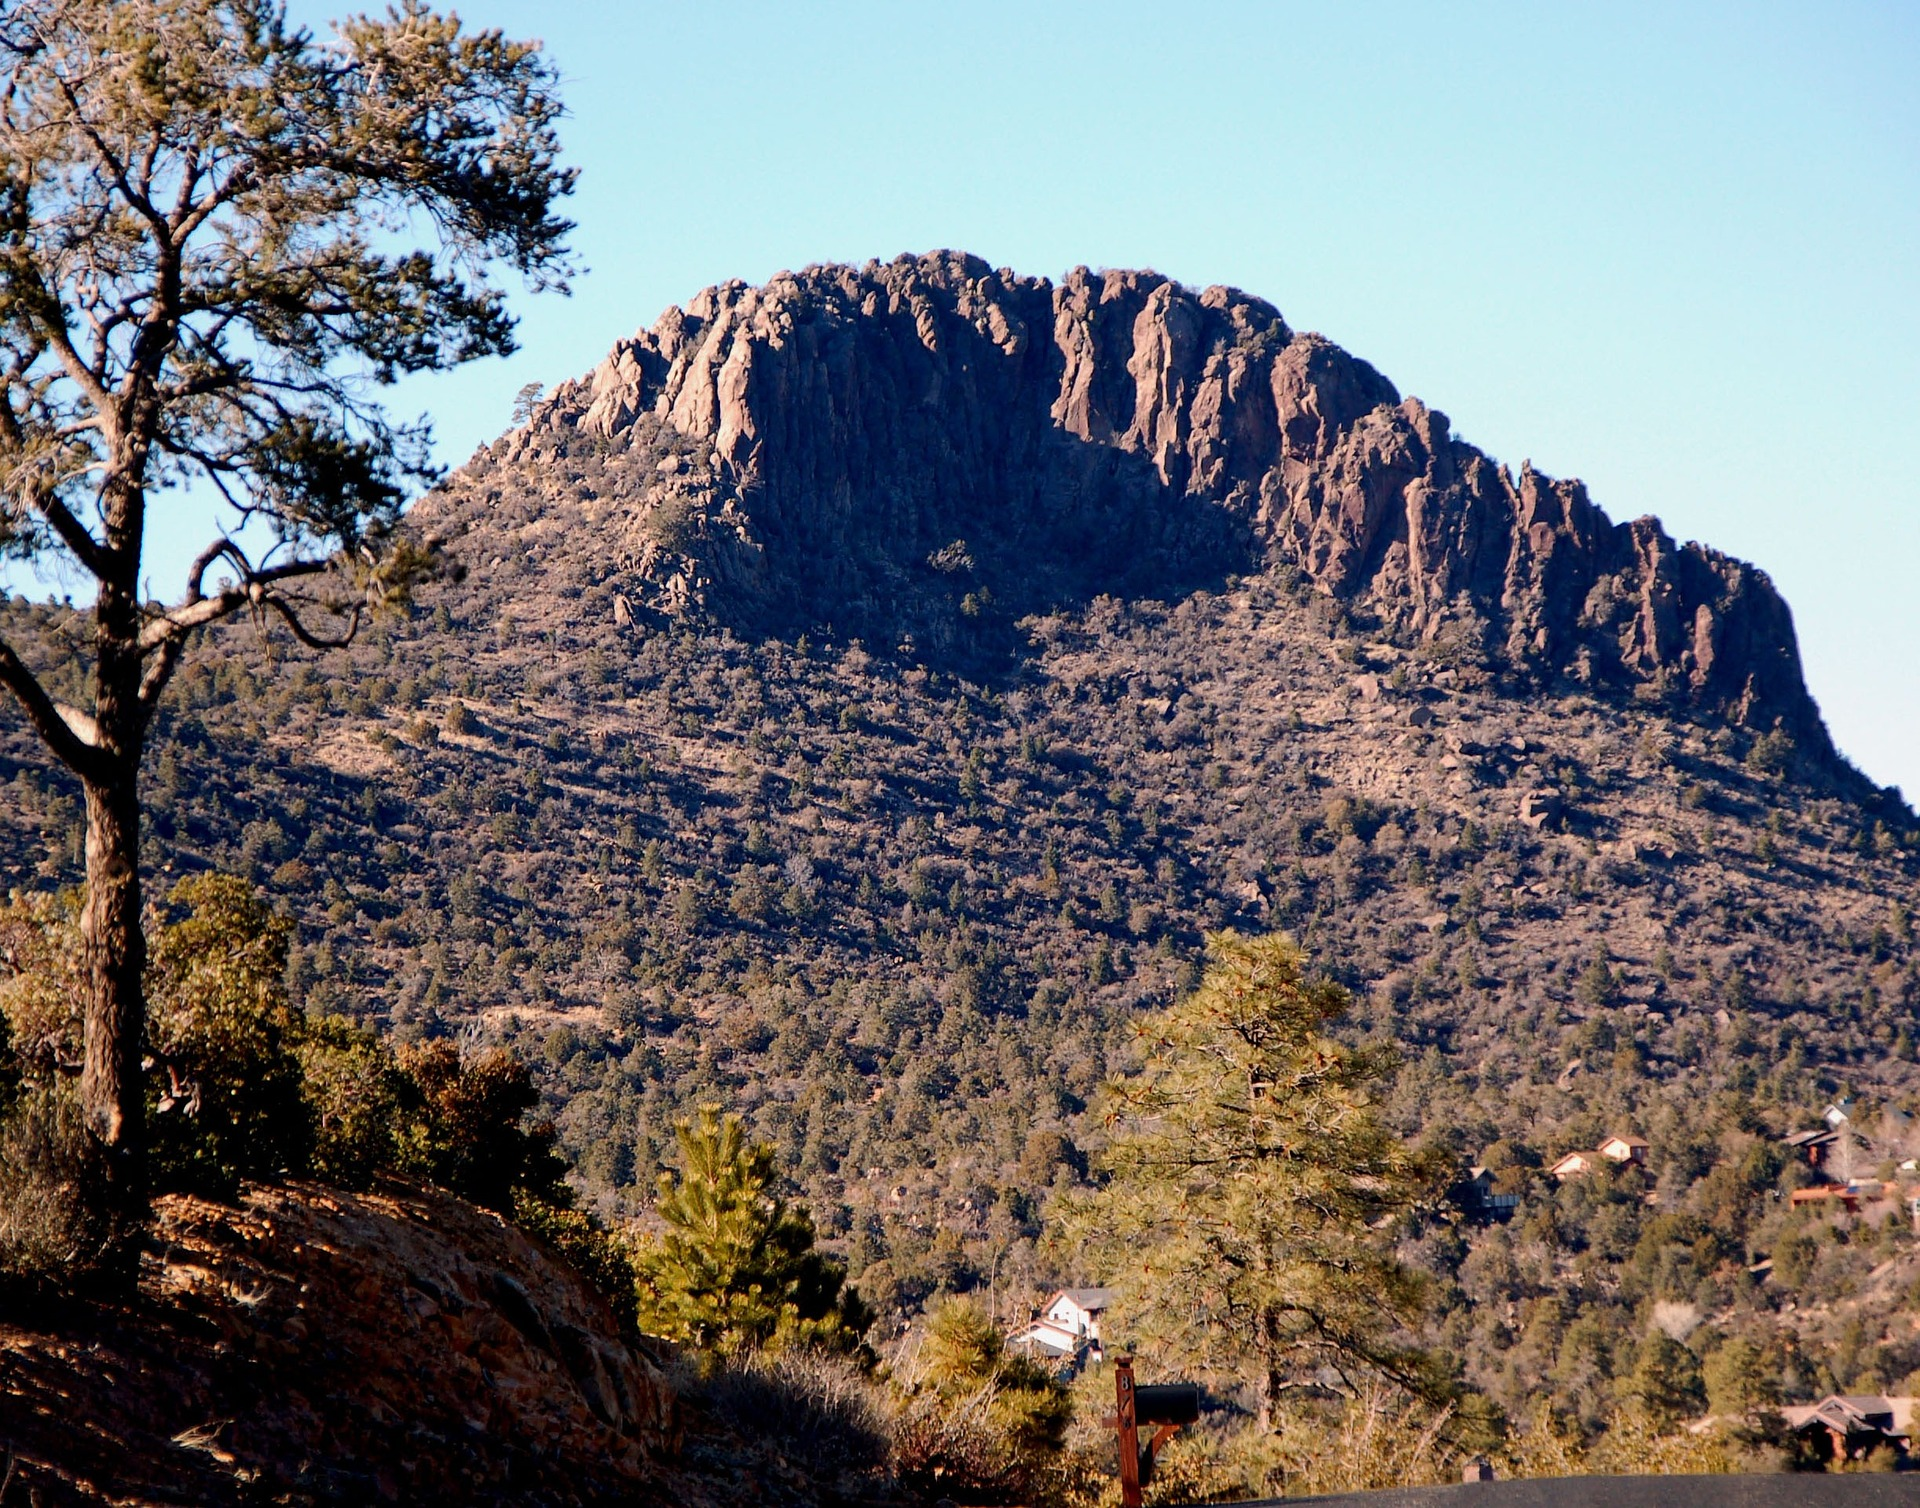 Things to Do and Places to Visit in Prescott, AZ